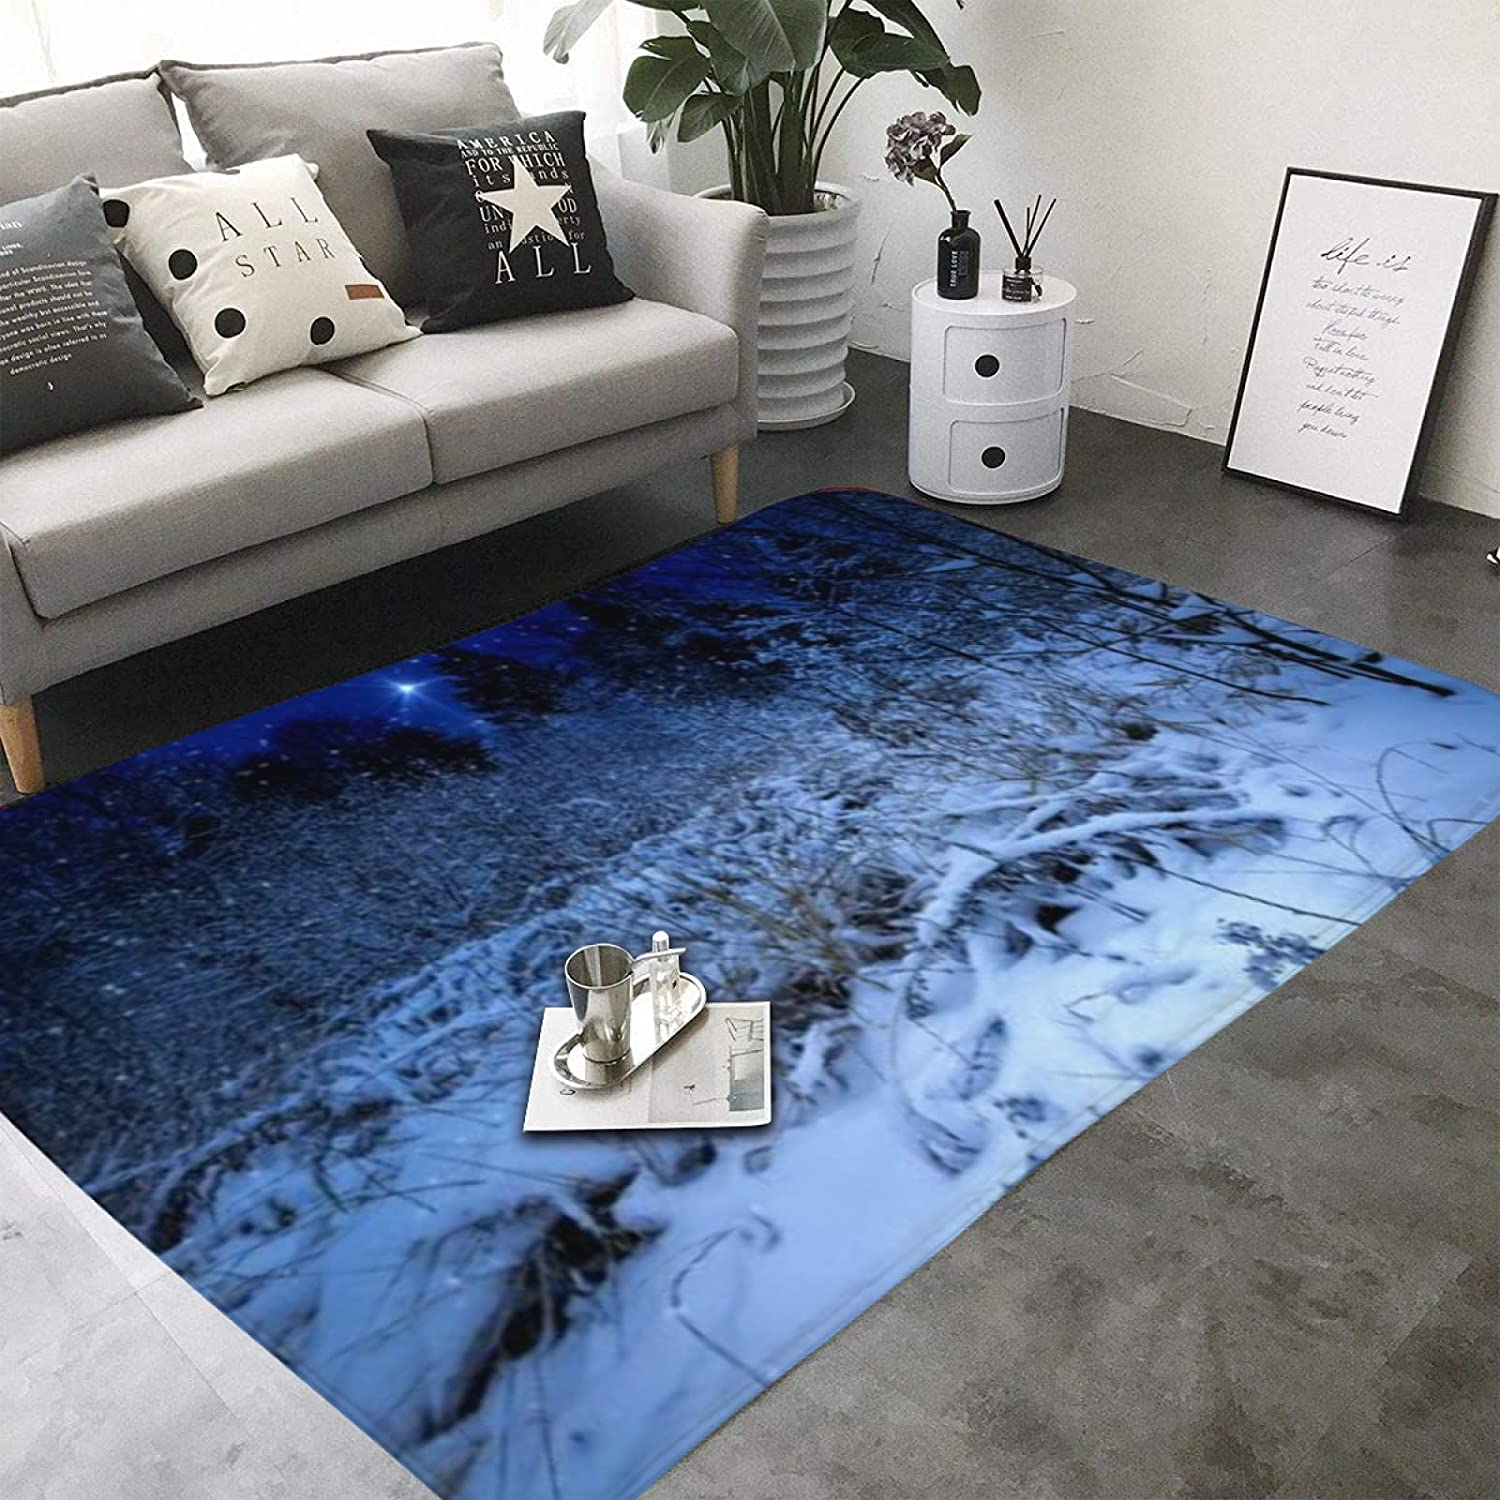 Area Rug Snowy Forest at Night with Xmas Star Holiday Bliz-zard Winter Sky Universe for Living Room Dining Room Bedroom playroom Parent-Child Game mat Study Office Room Decor TCY